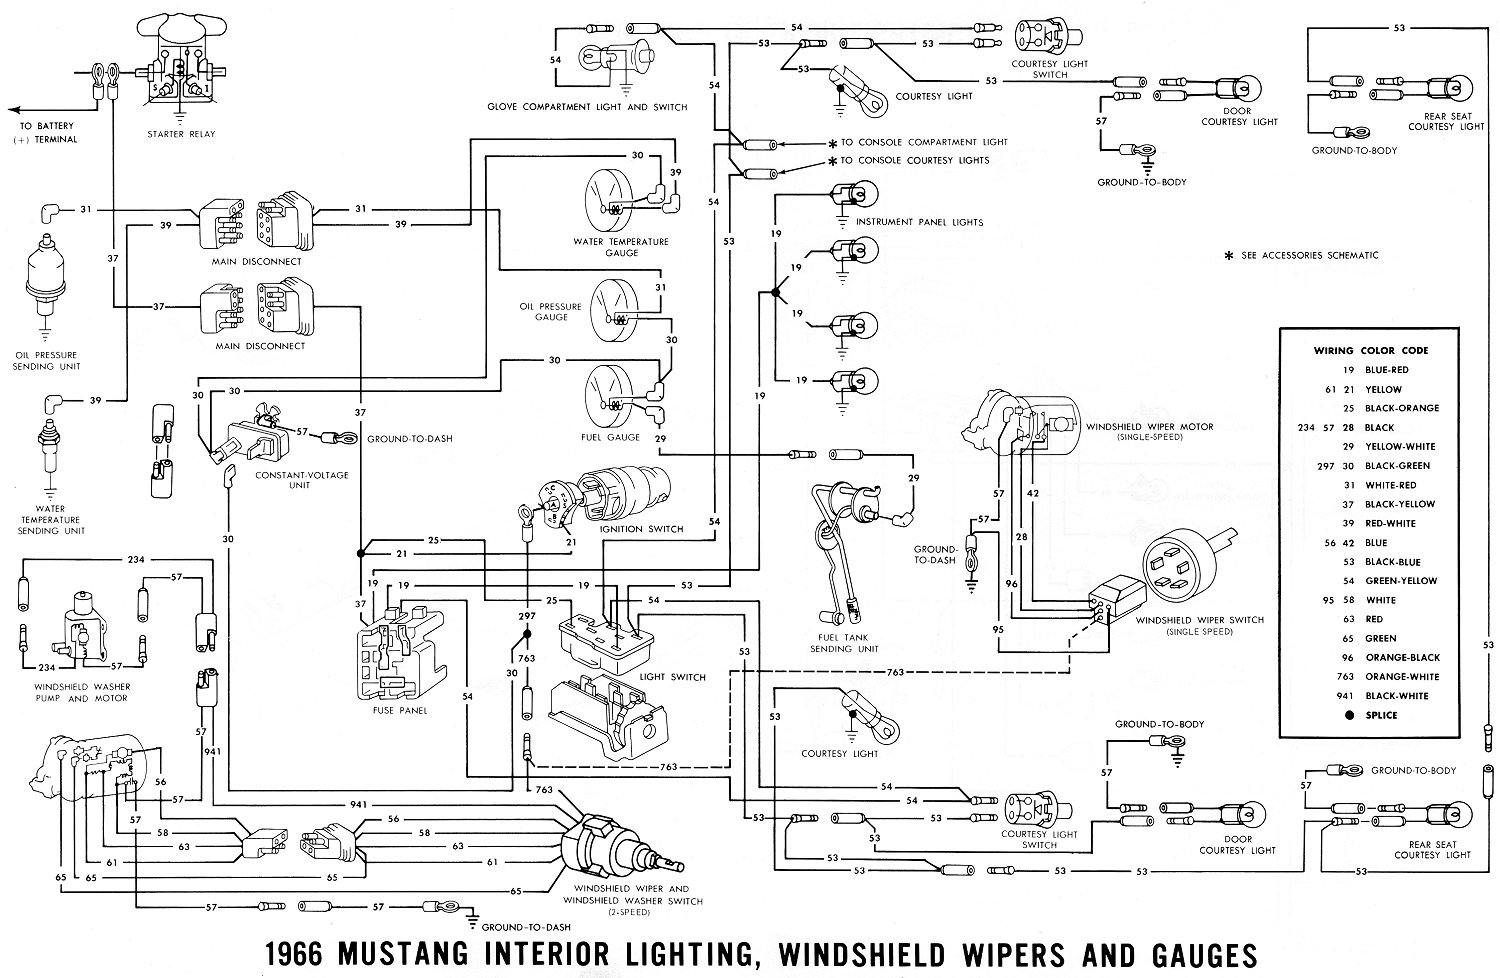 1966 mustang wiring diagrams average joe restoration rh  averagejoerestoration com 1966 Mustang Color Wiring Diagram 1966 Mustang  Radio Wiring Diagram